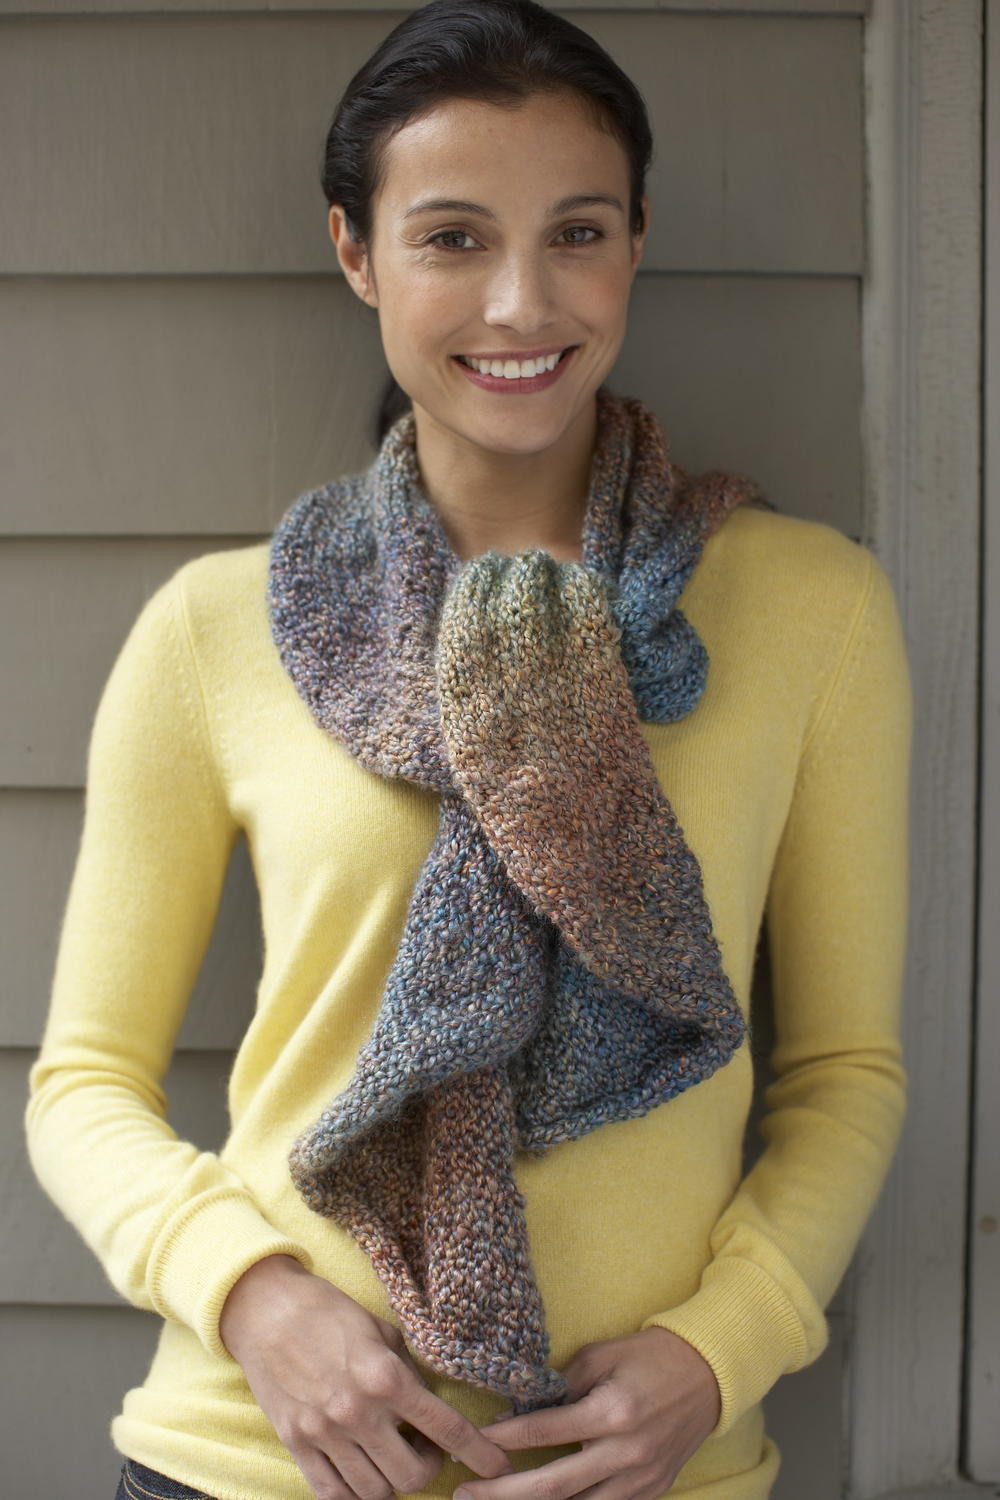 Easy Scarf Knitting Patterns Elegant Arizona Dusk Scarf Of Attractive 48 Ideas Easy Scarf Knitting Patterns